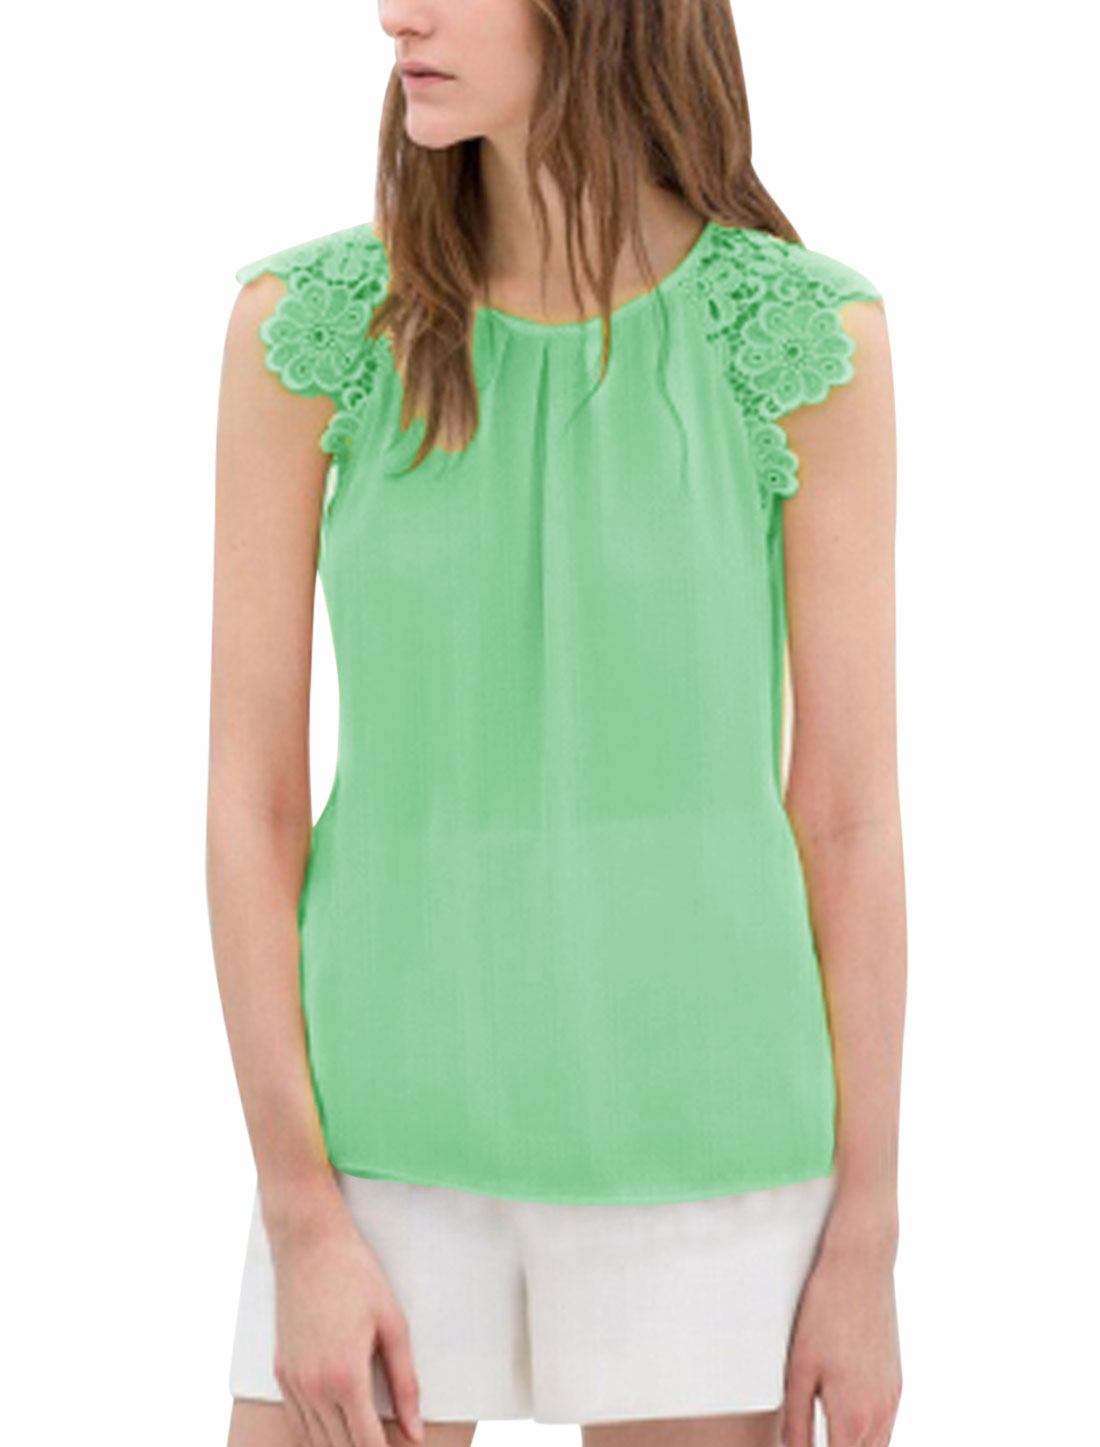 Lady Crochet Shoulder Patching See Through Chiffon Blouse Mint L